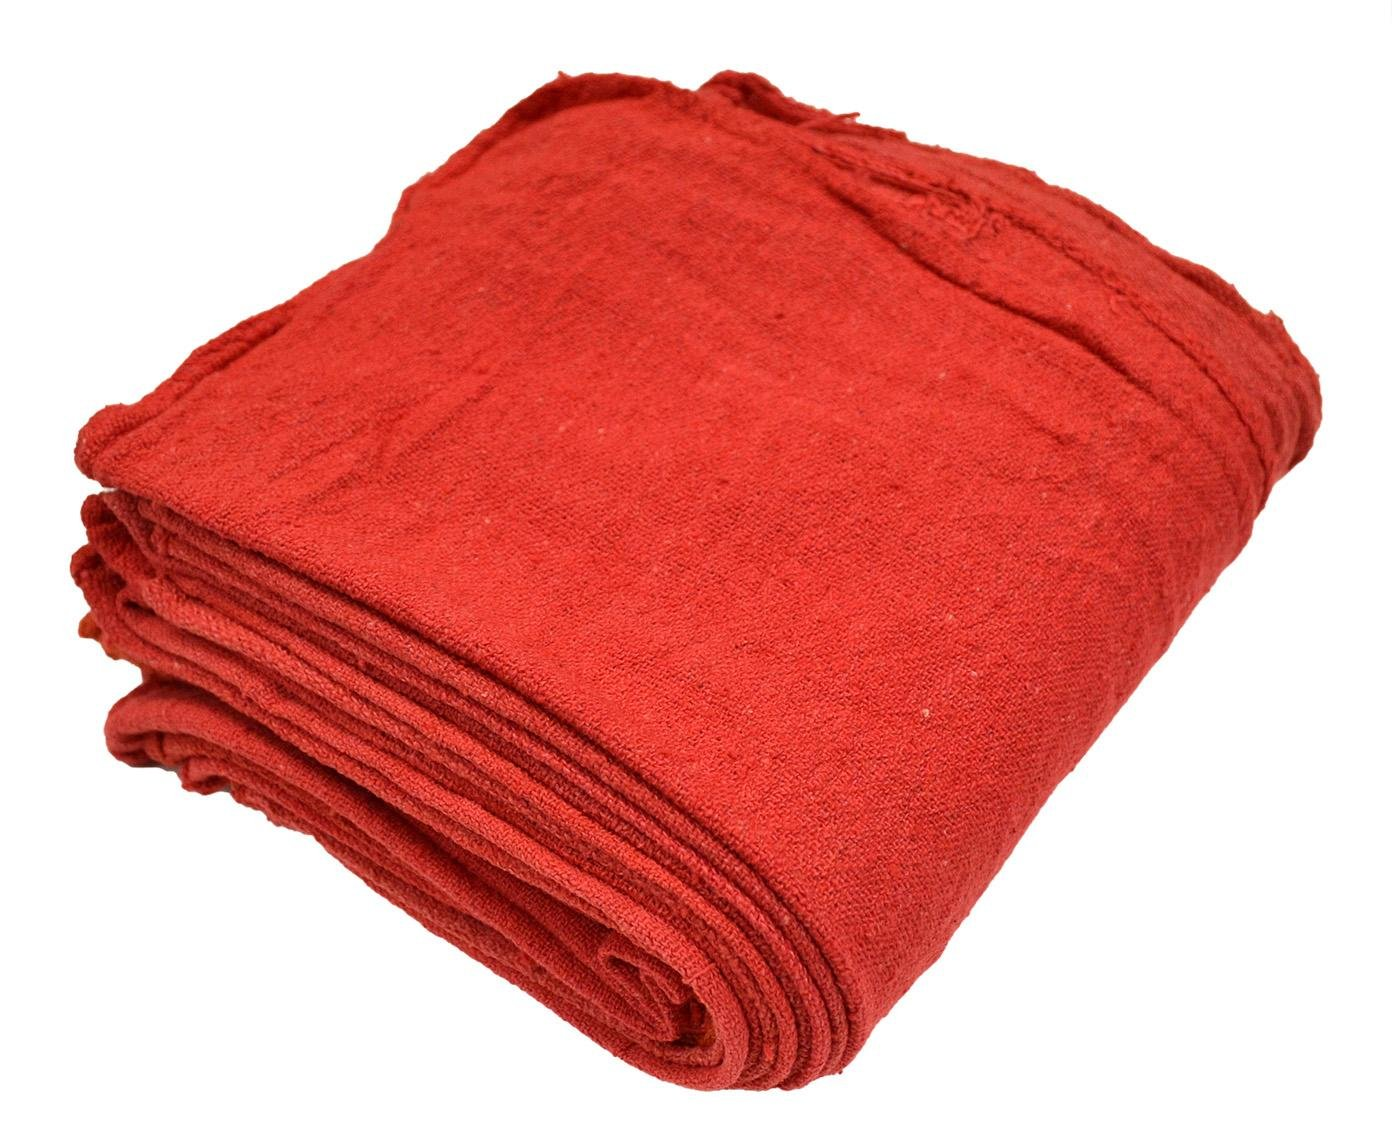 Pro-Clean Basics A21825 Reusable Shop Towels, Red, 12'' x 14'', Pack of 100